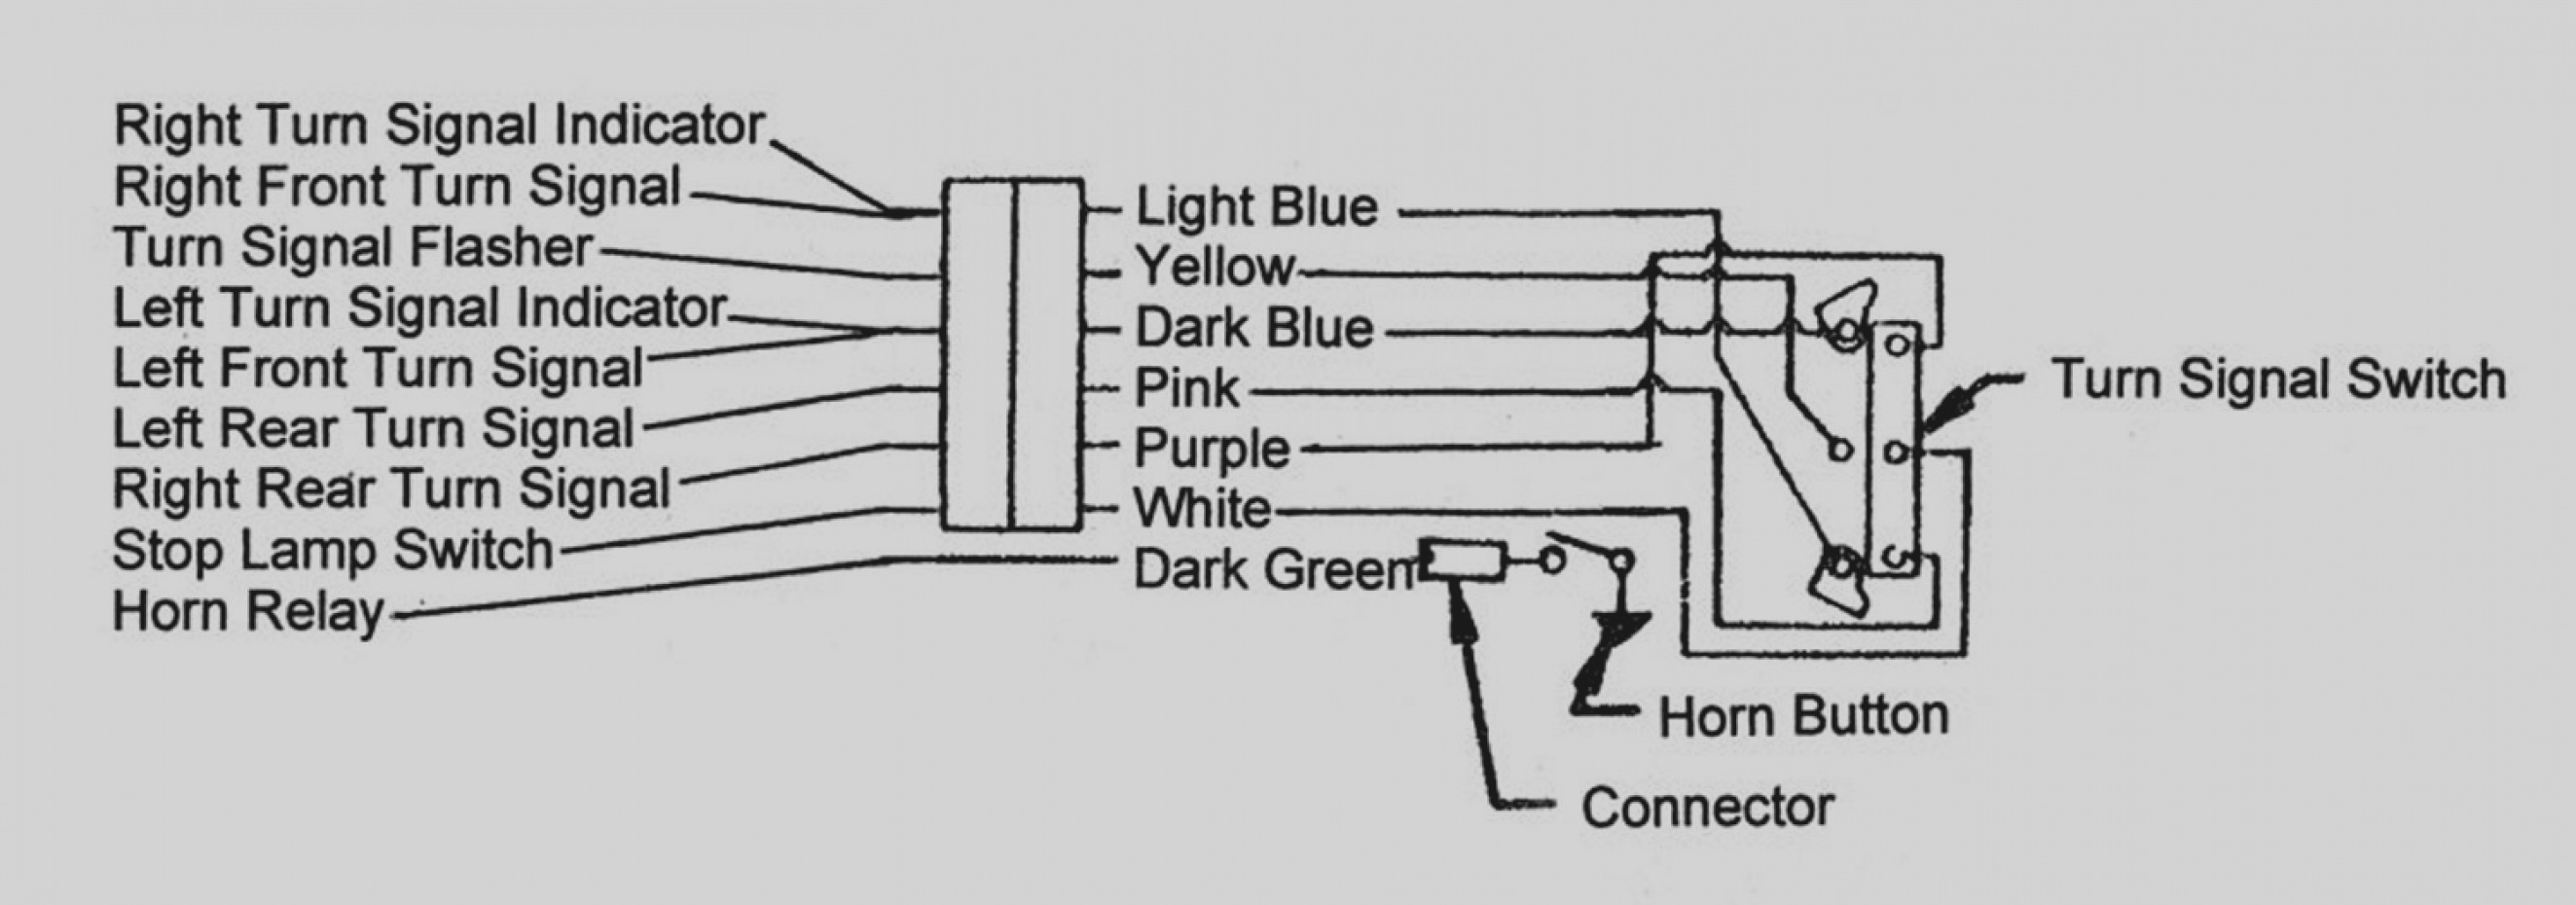 Diagram In Pictures Database  1954 Gm Turn Signal Wiring